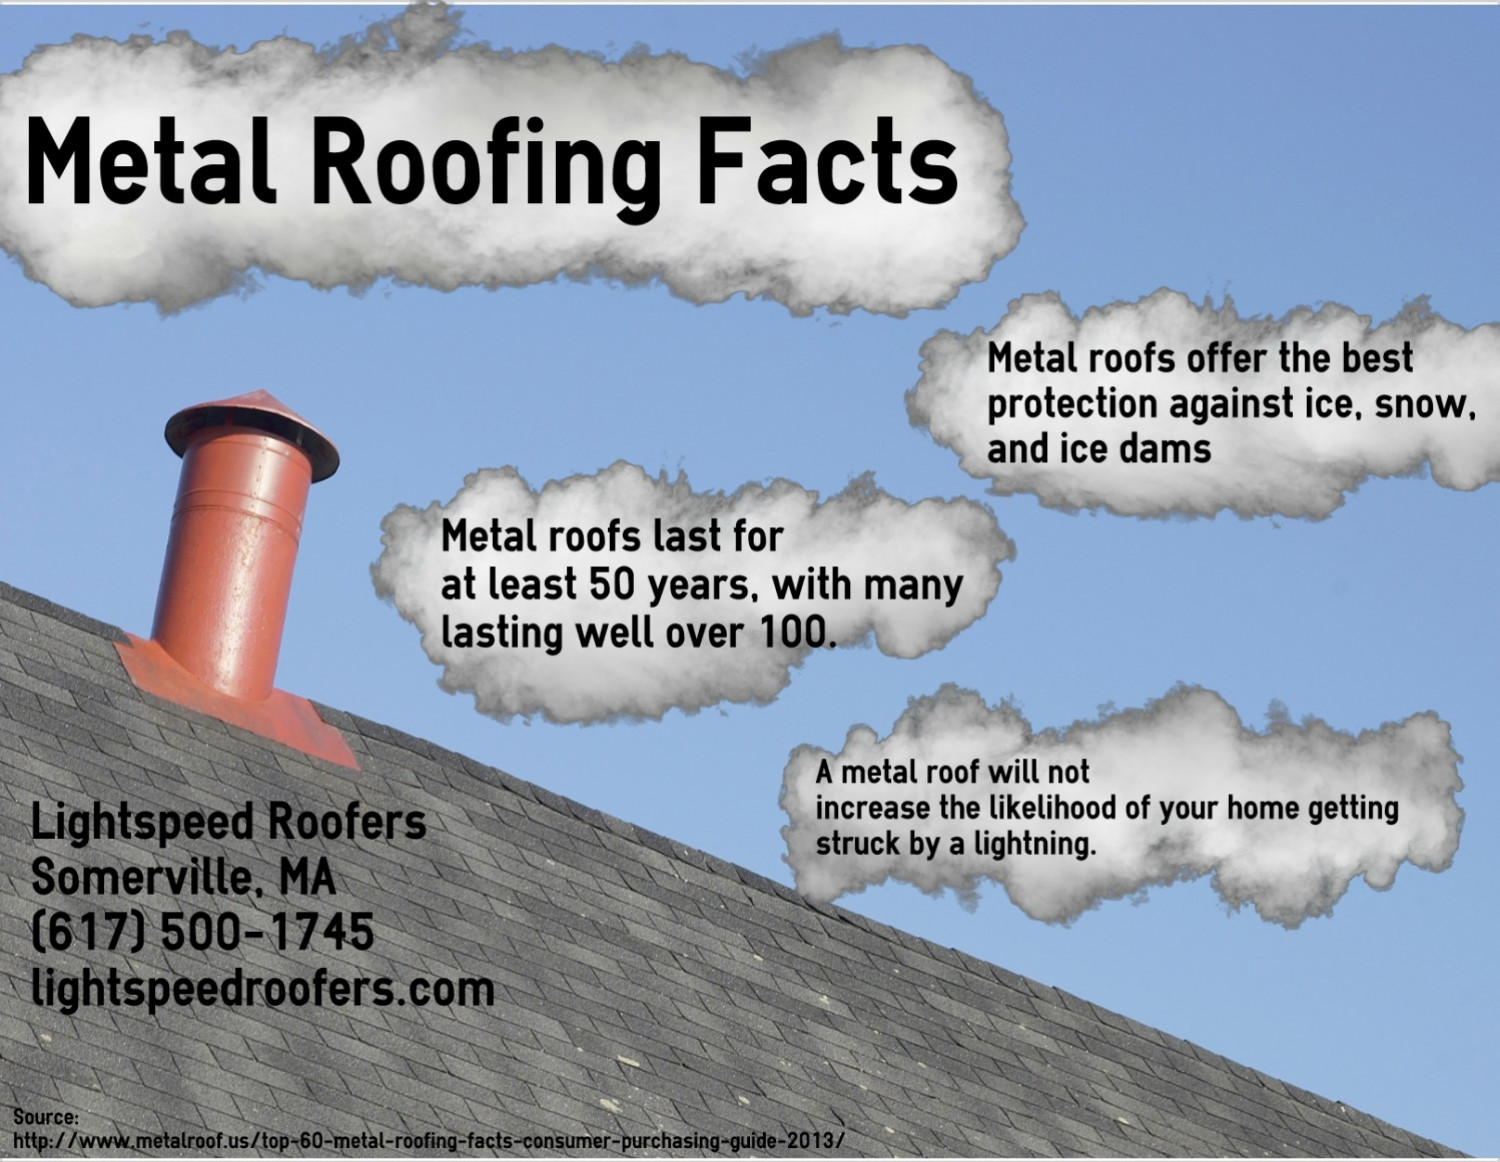 Metal Roofing Facts Infographic